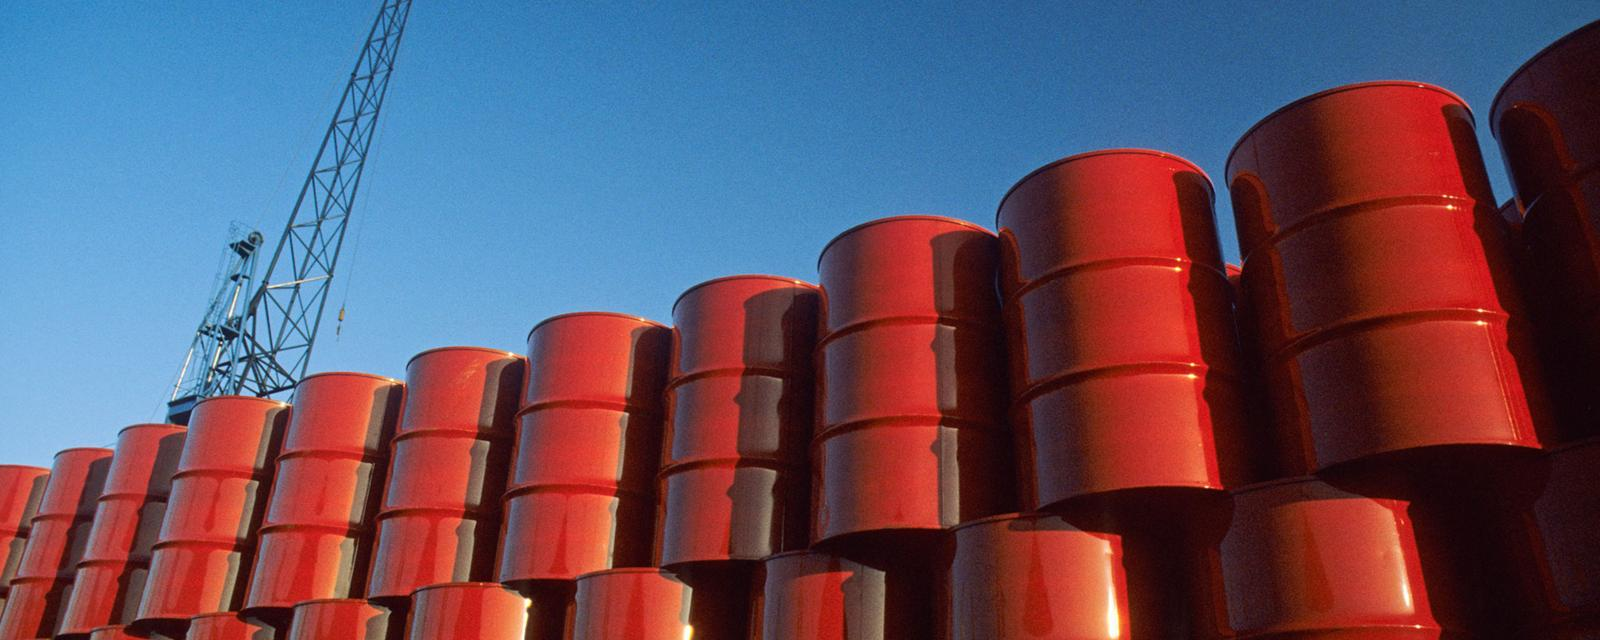 The US has 700 million barrels to spare (Credit: Getty Images)